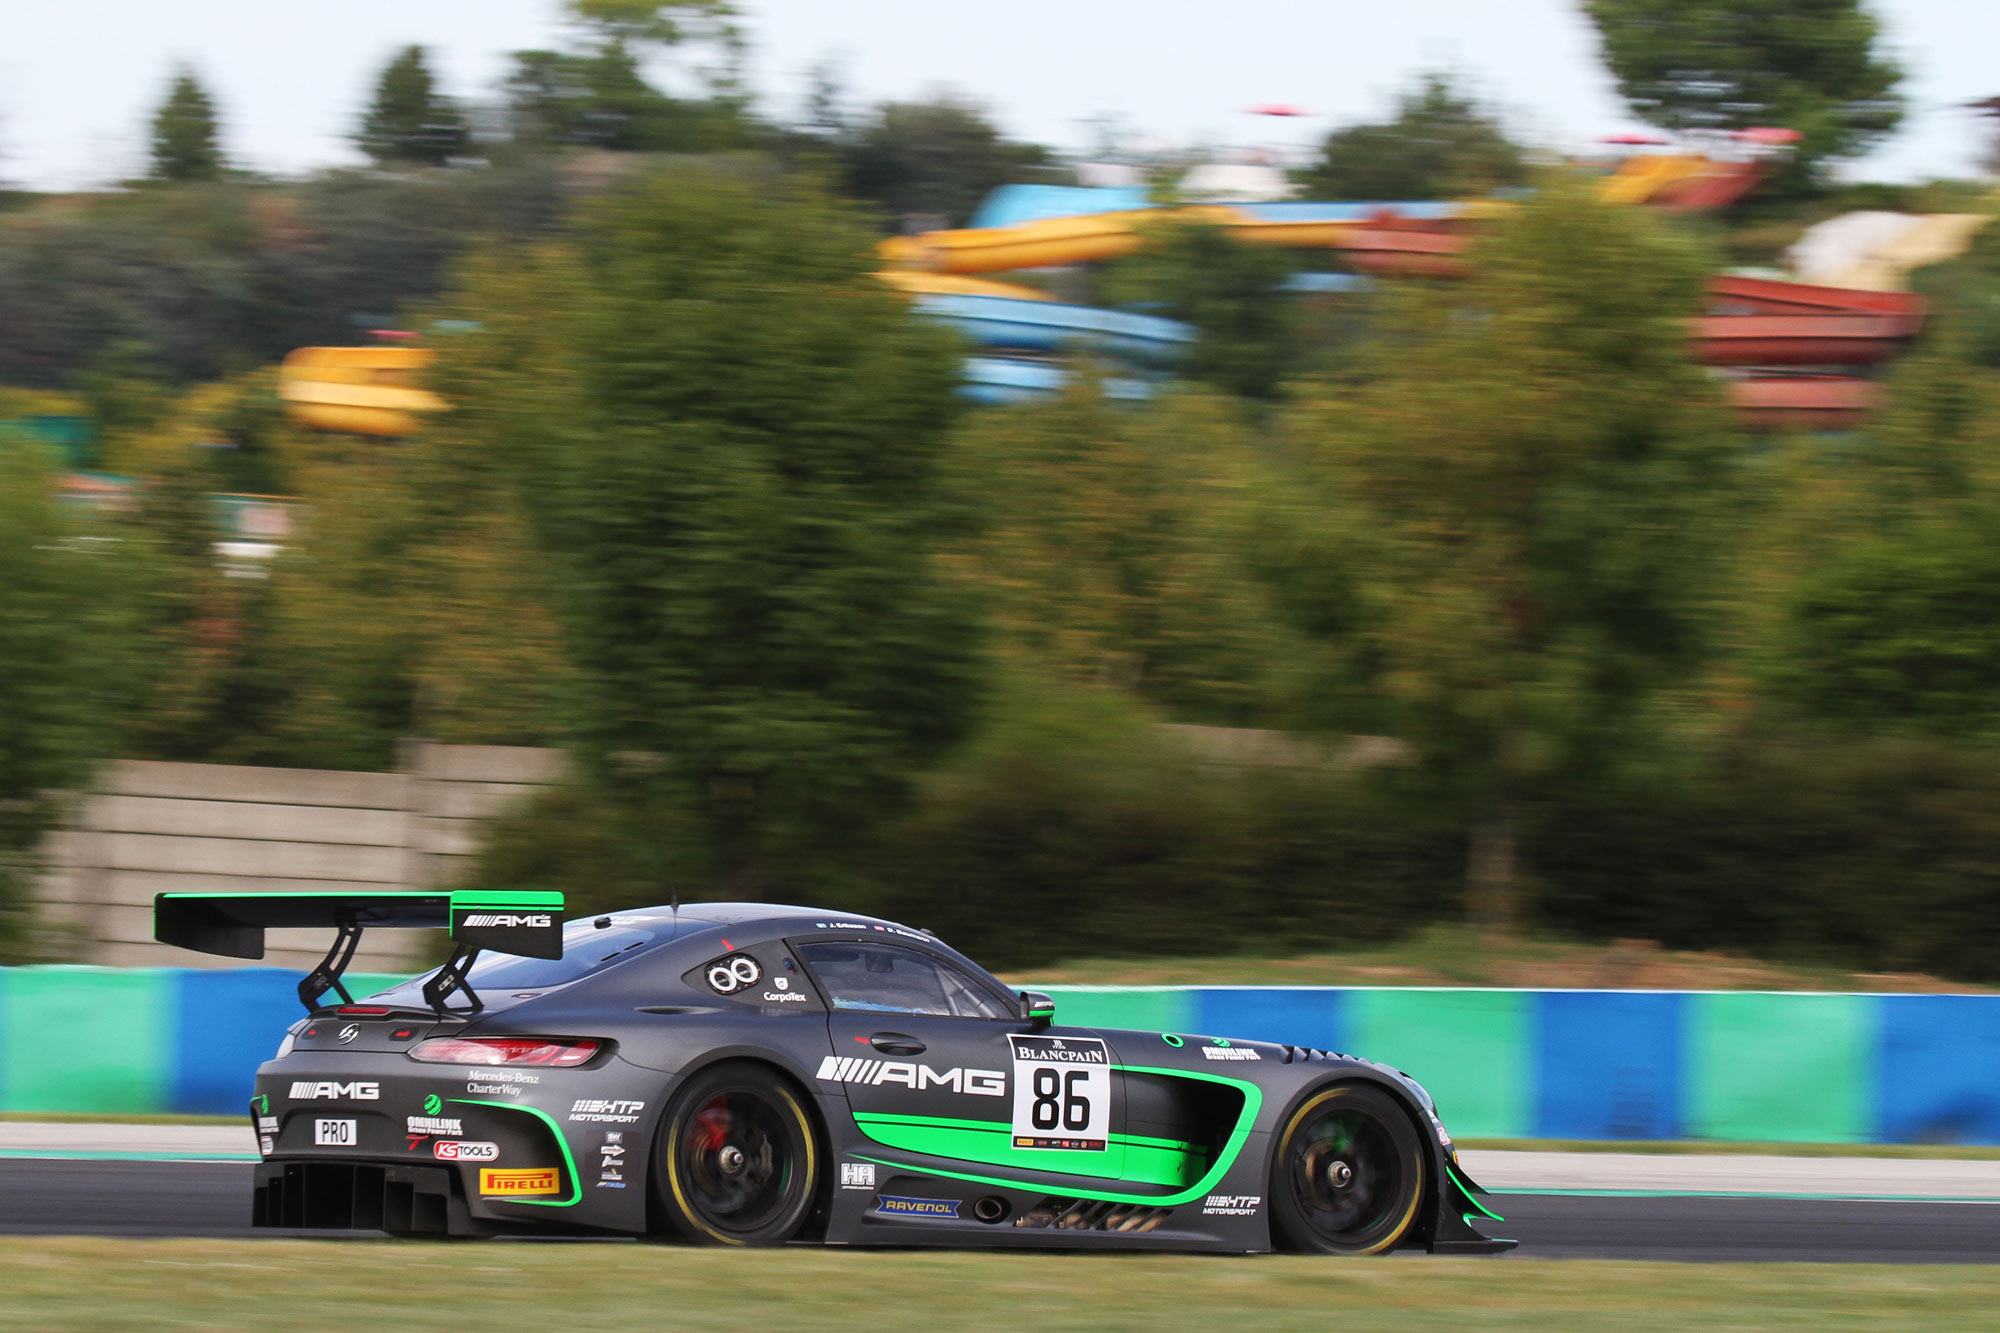 Jimmy Eriksson adds to Blancpain GT Series points tally